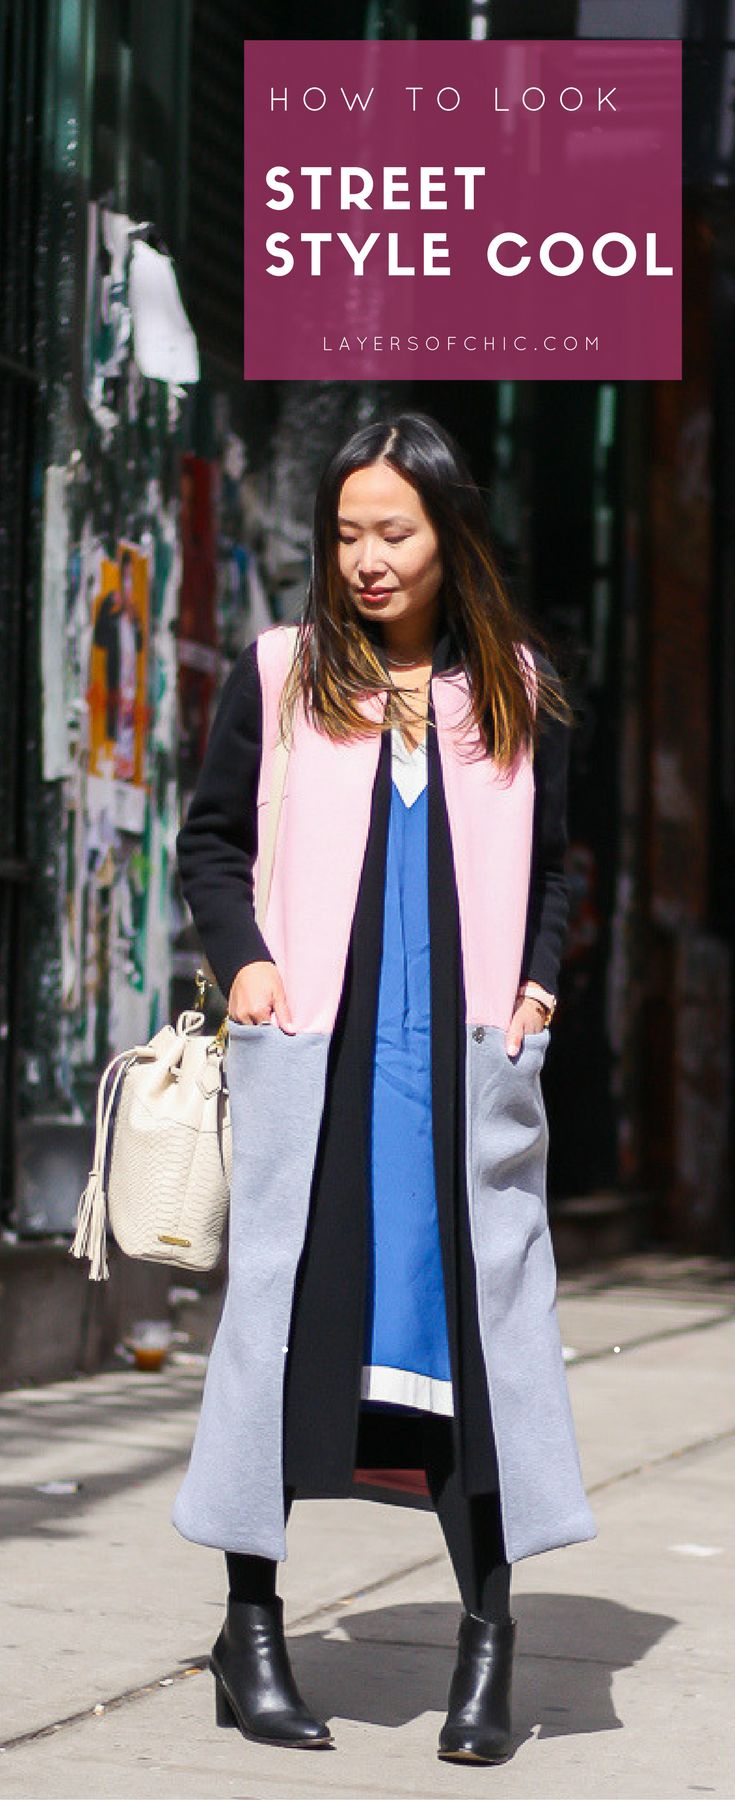 How to style a vest, street style cool outfits, color block outfits. Shop the look on www.layersofchic.com